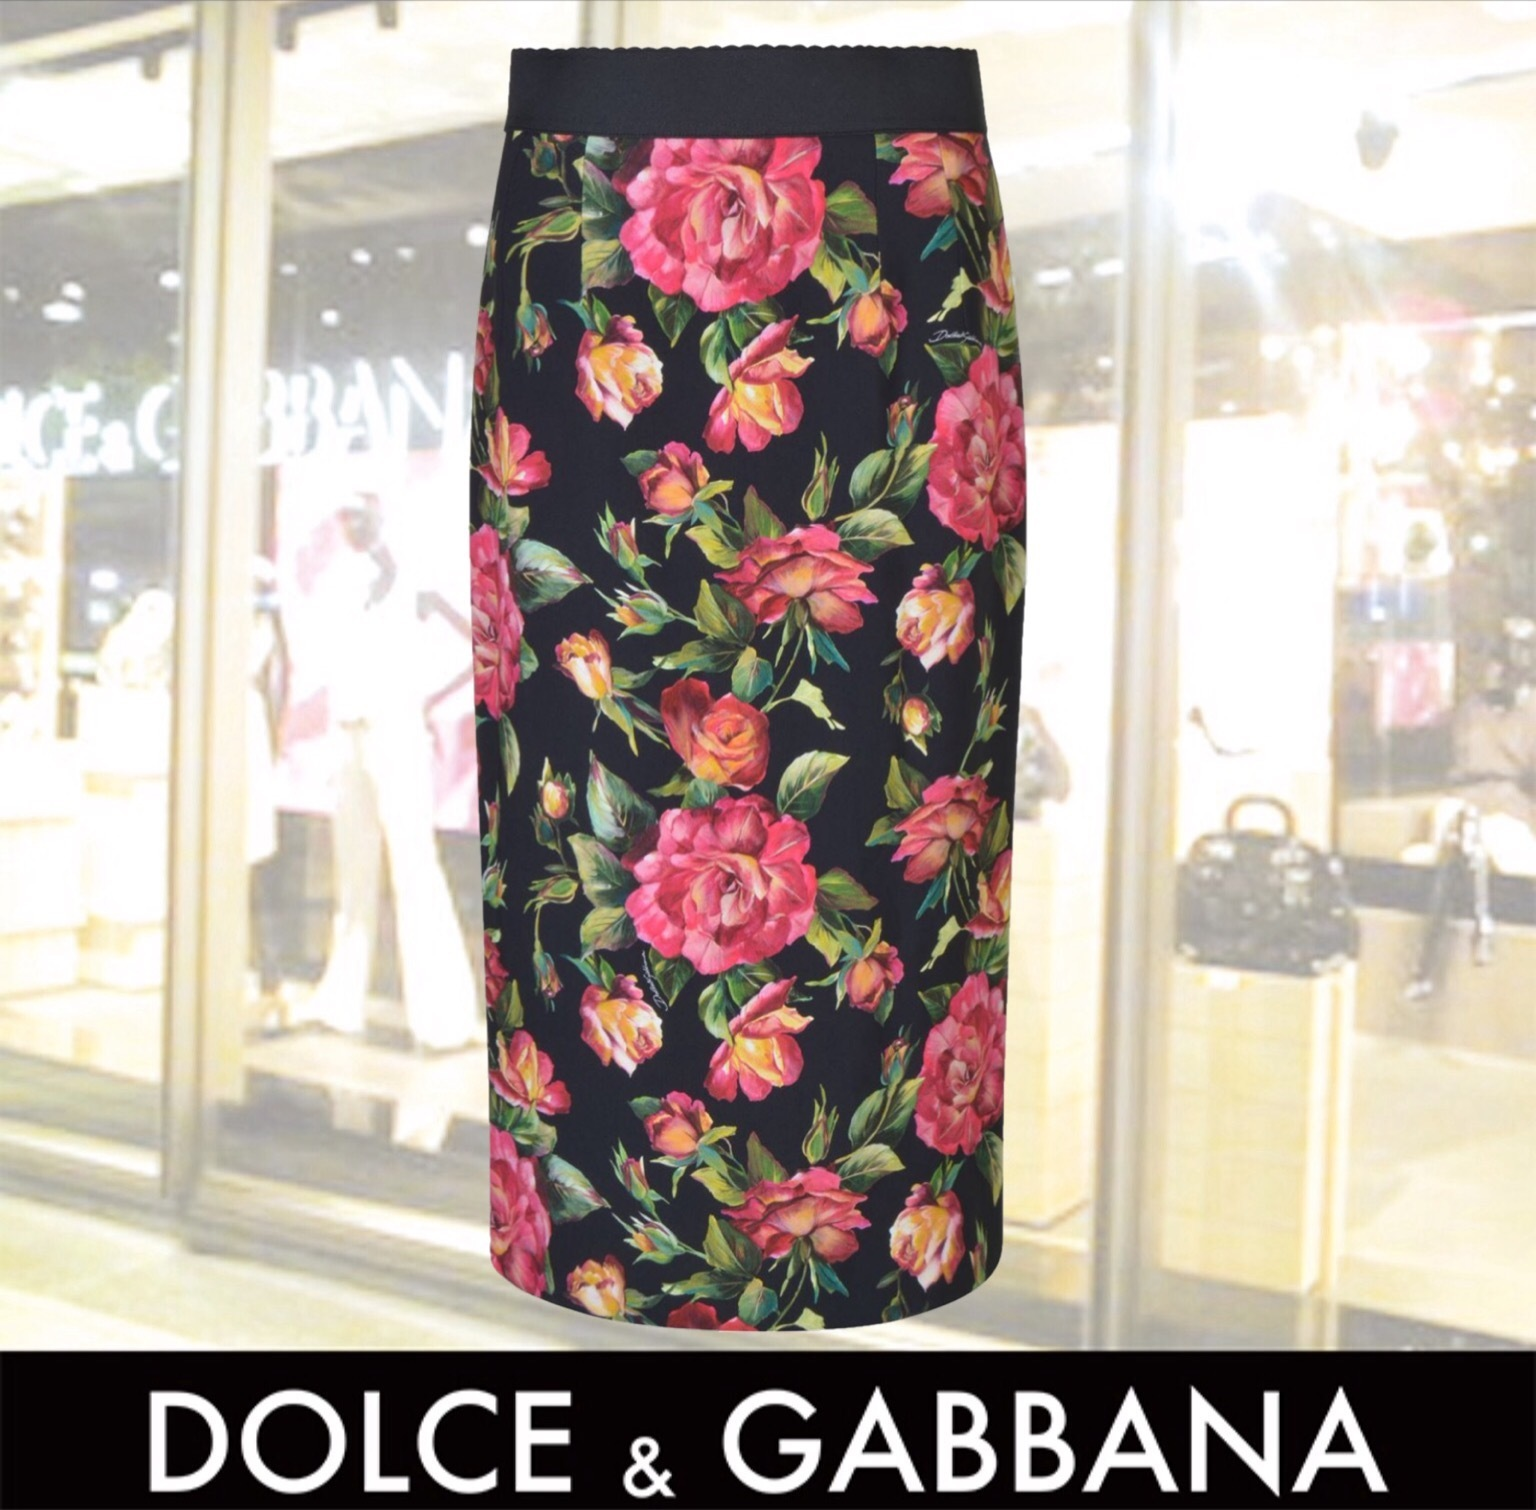 新作DOLCE AND GABBANA ROSE PRINT PENCIL SKIRT 関税送料込